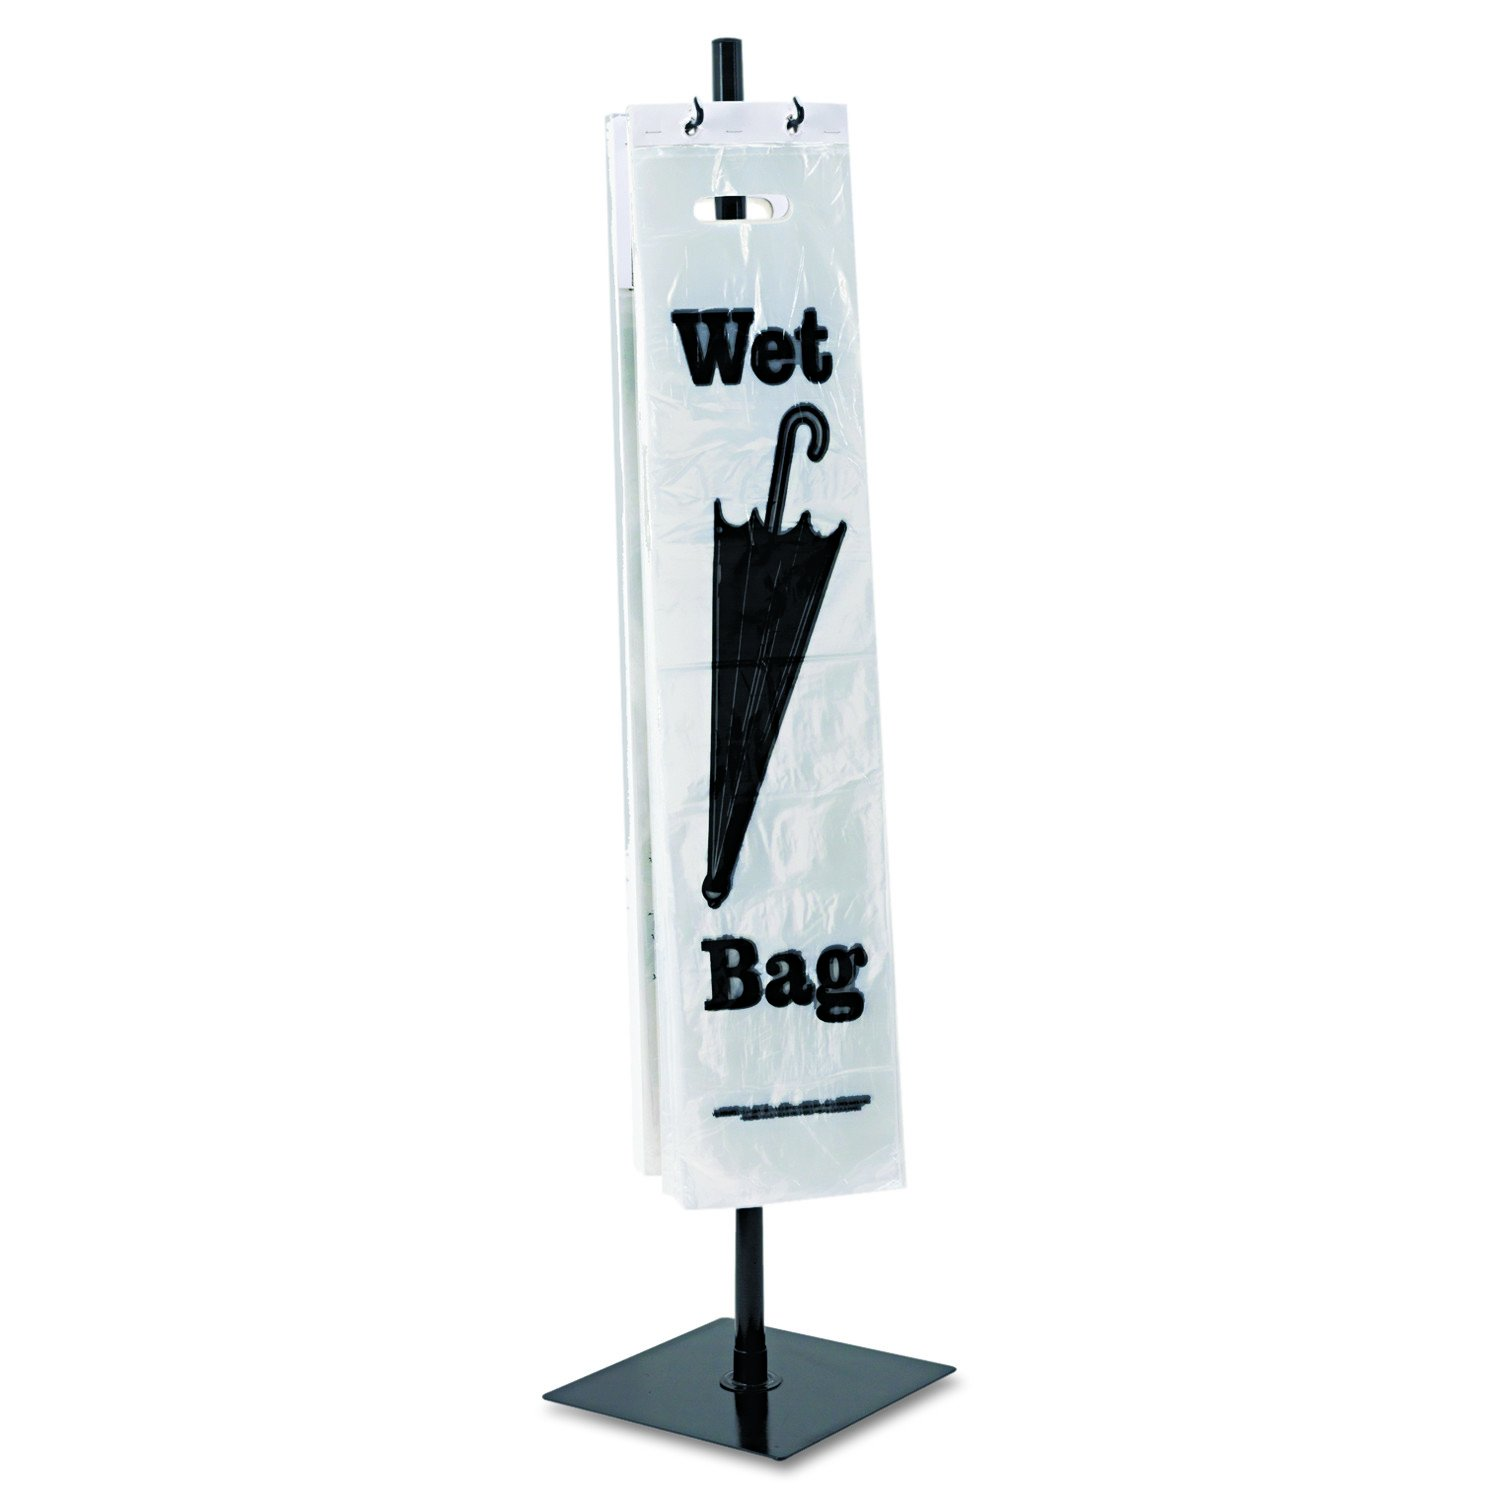 Tatco Wet Umbrella Stand, 10 Width x 40 Height, Powder Coated Steel, Black (57019) by Tatco